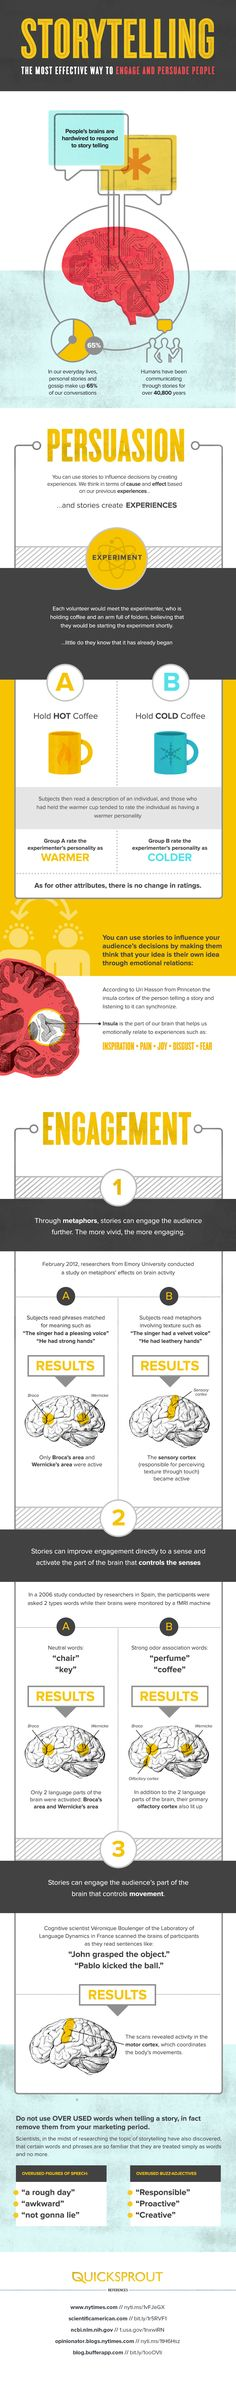 Storytelling The Most Effective Way to Engage and Persuade People #infographic